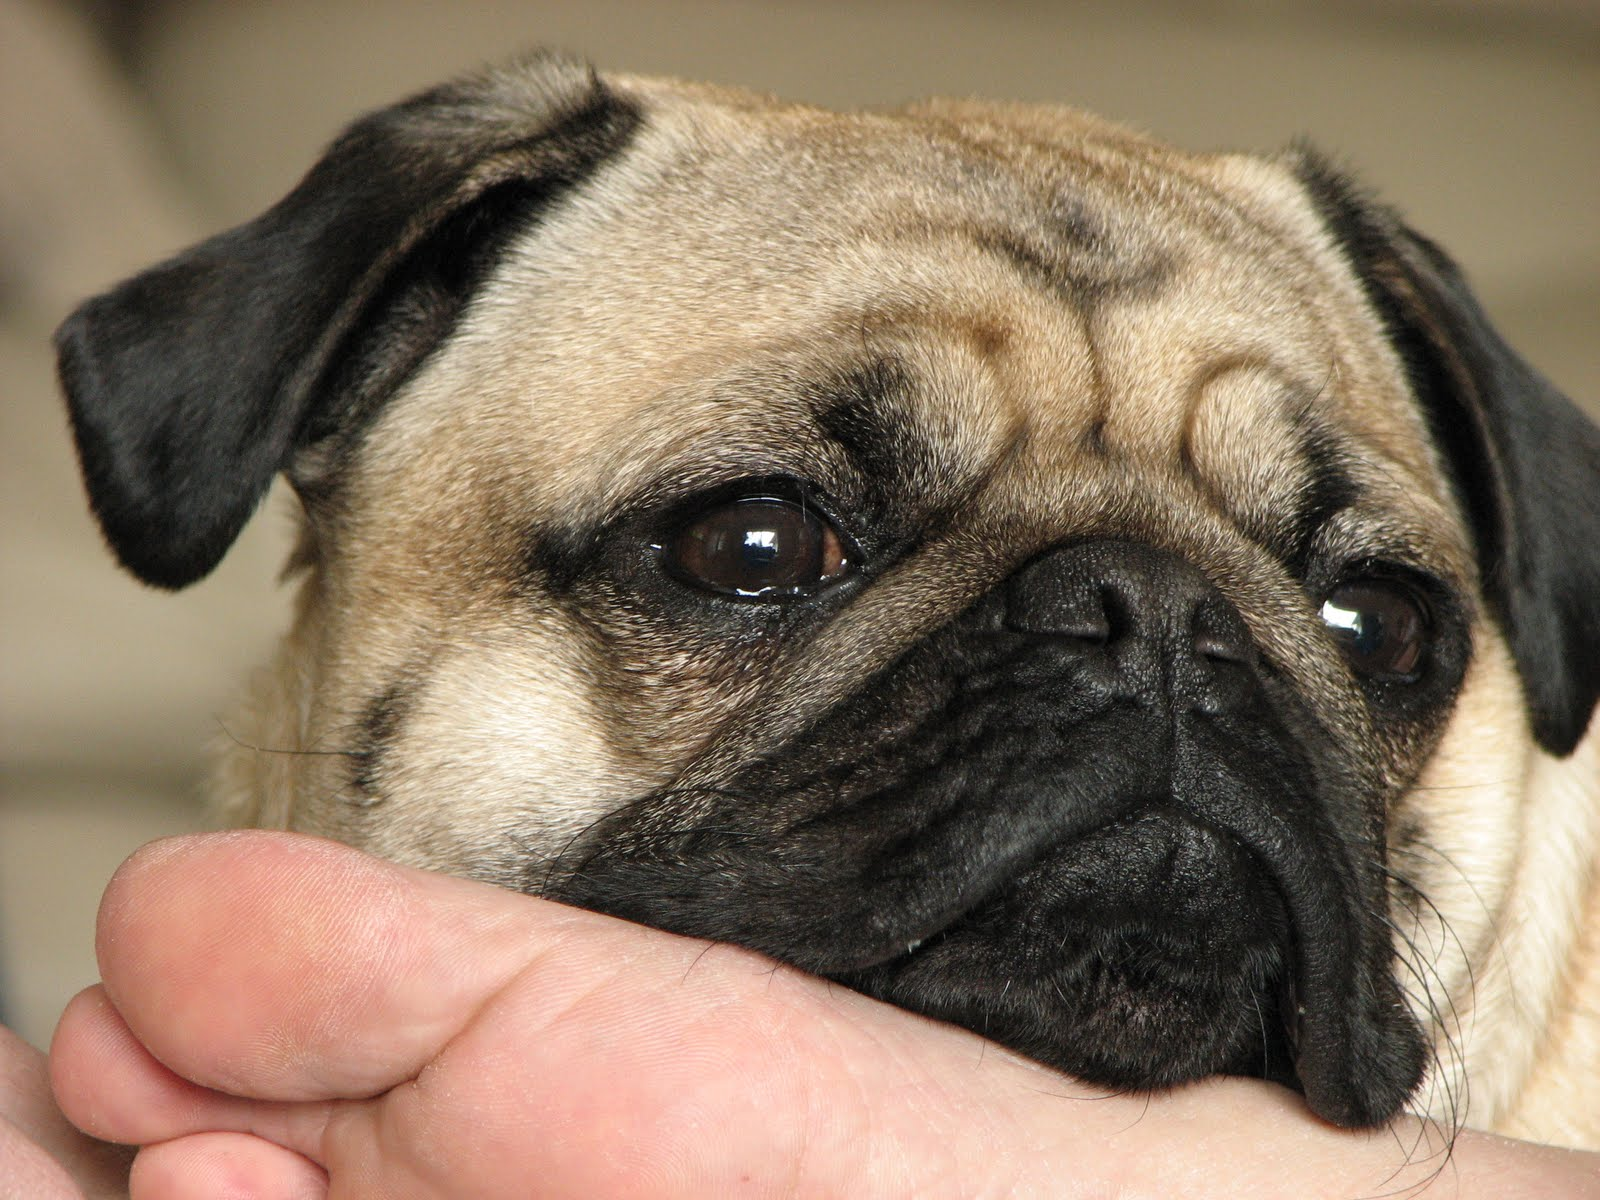 pug dog puppy photo gallery pug dog puppy pictures